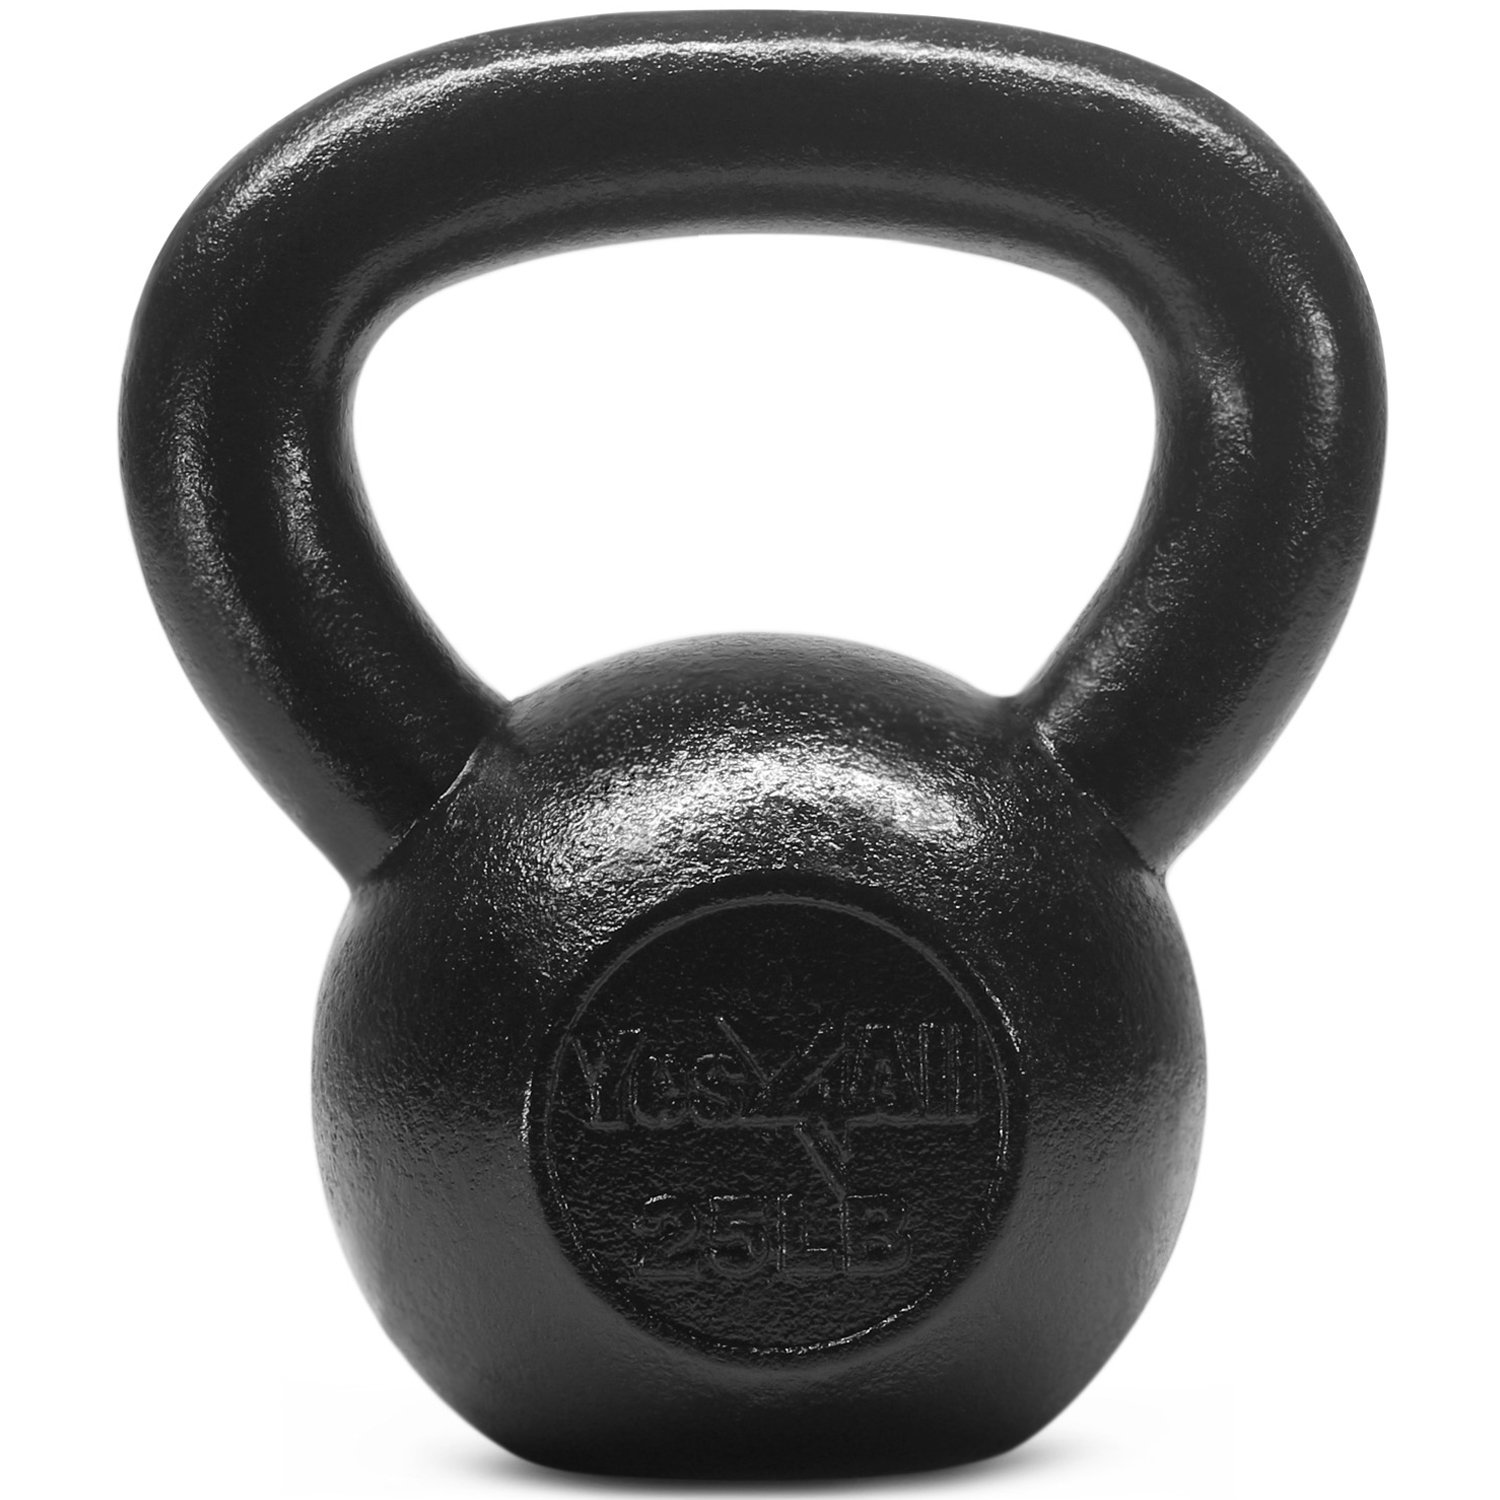 Yes4All Solid Cast Iron Kettlebells – Weight Available: 5, 10, 15, 20, 25 to 80 lbs (H - Black 25lb)